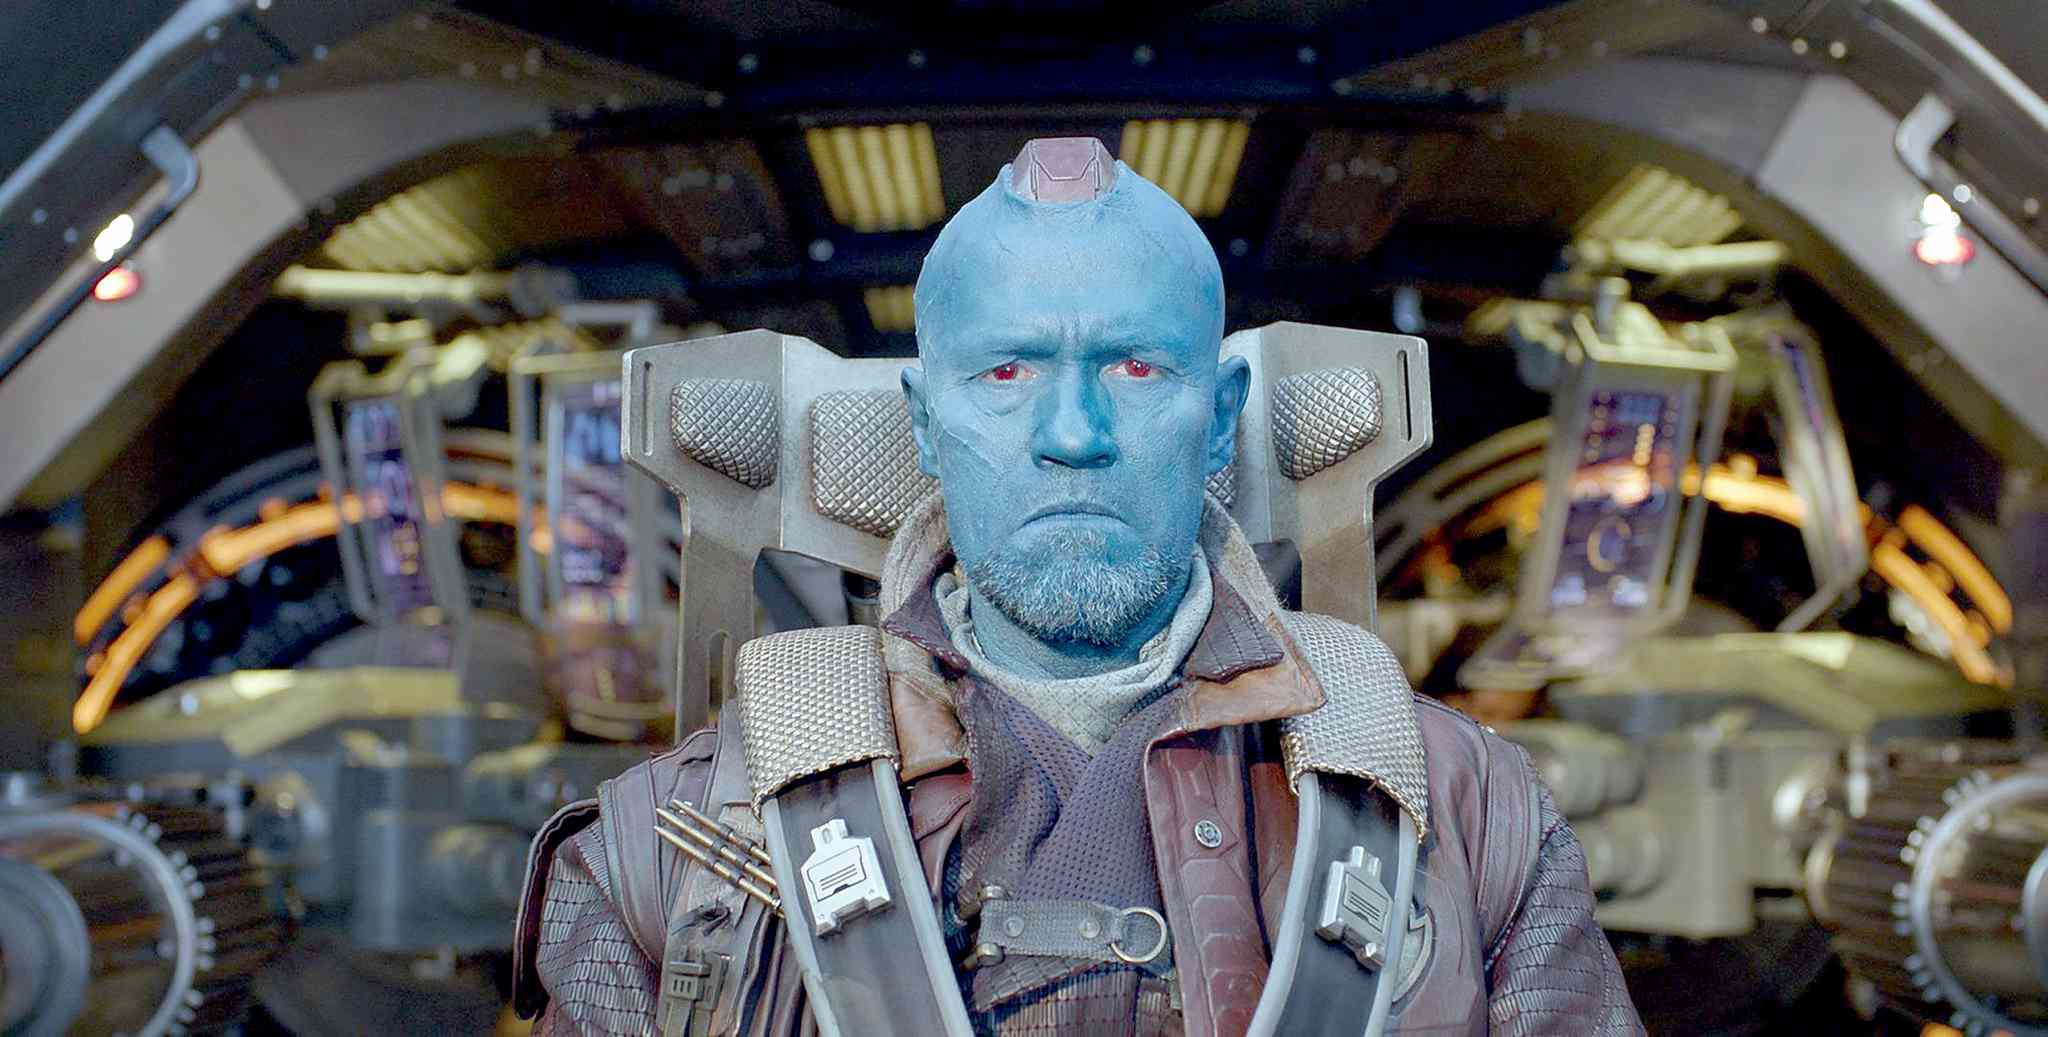 Michael Rooker as Yondu in Marvel's Guardians of the Galaxy. (Marvel/MCT)